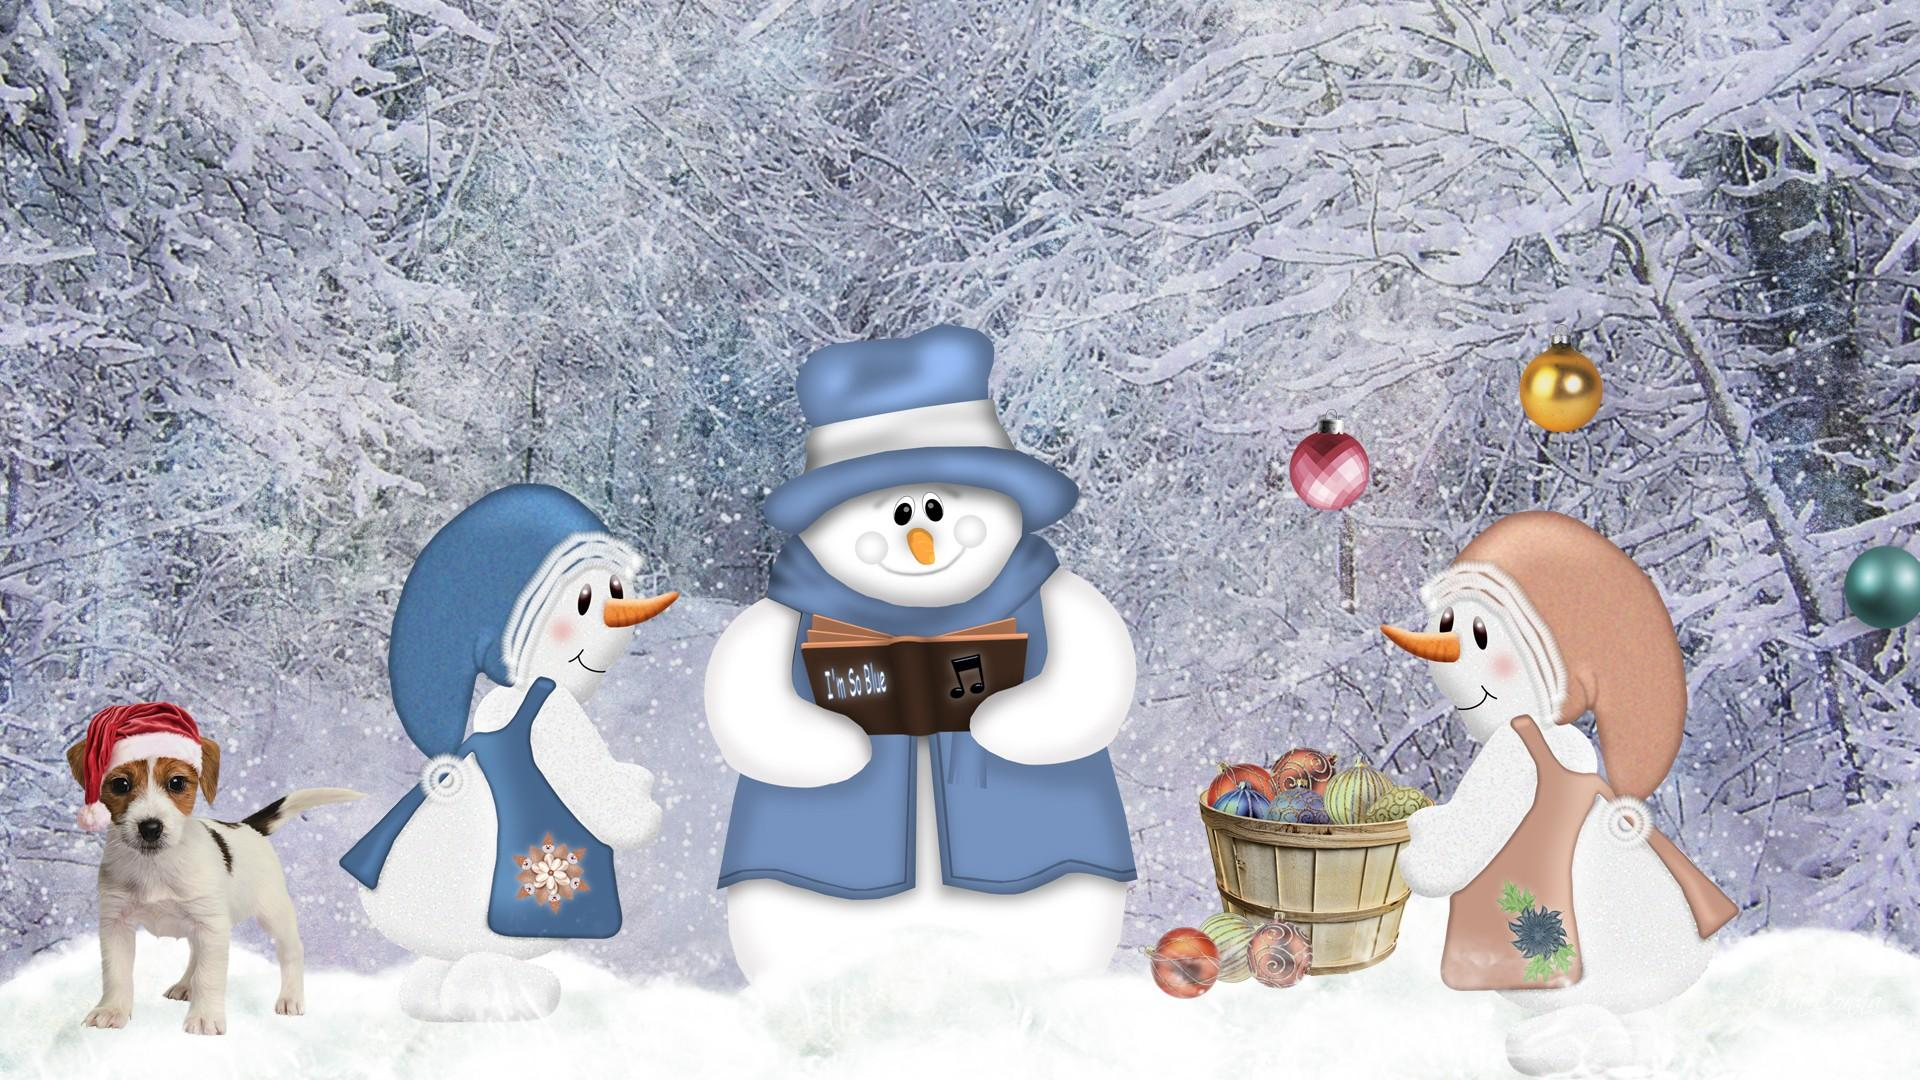 cute country snowman wallpaper - photo #2